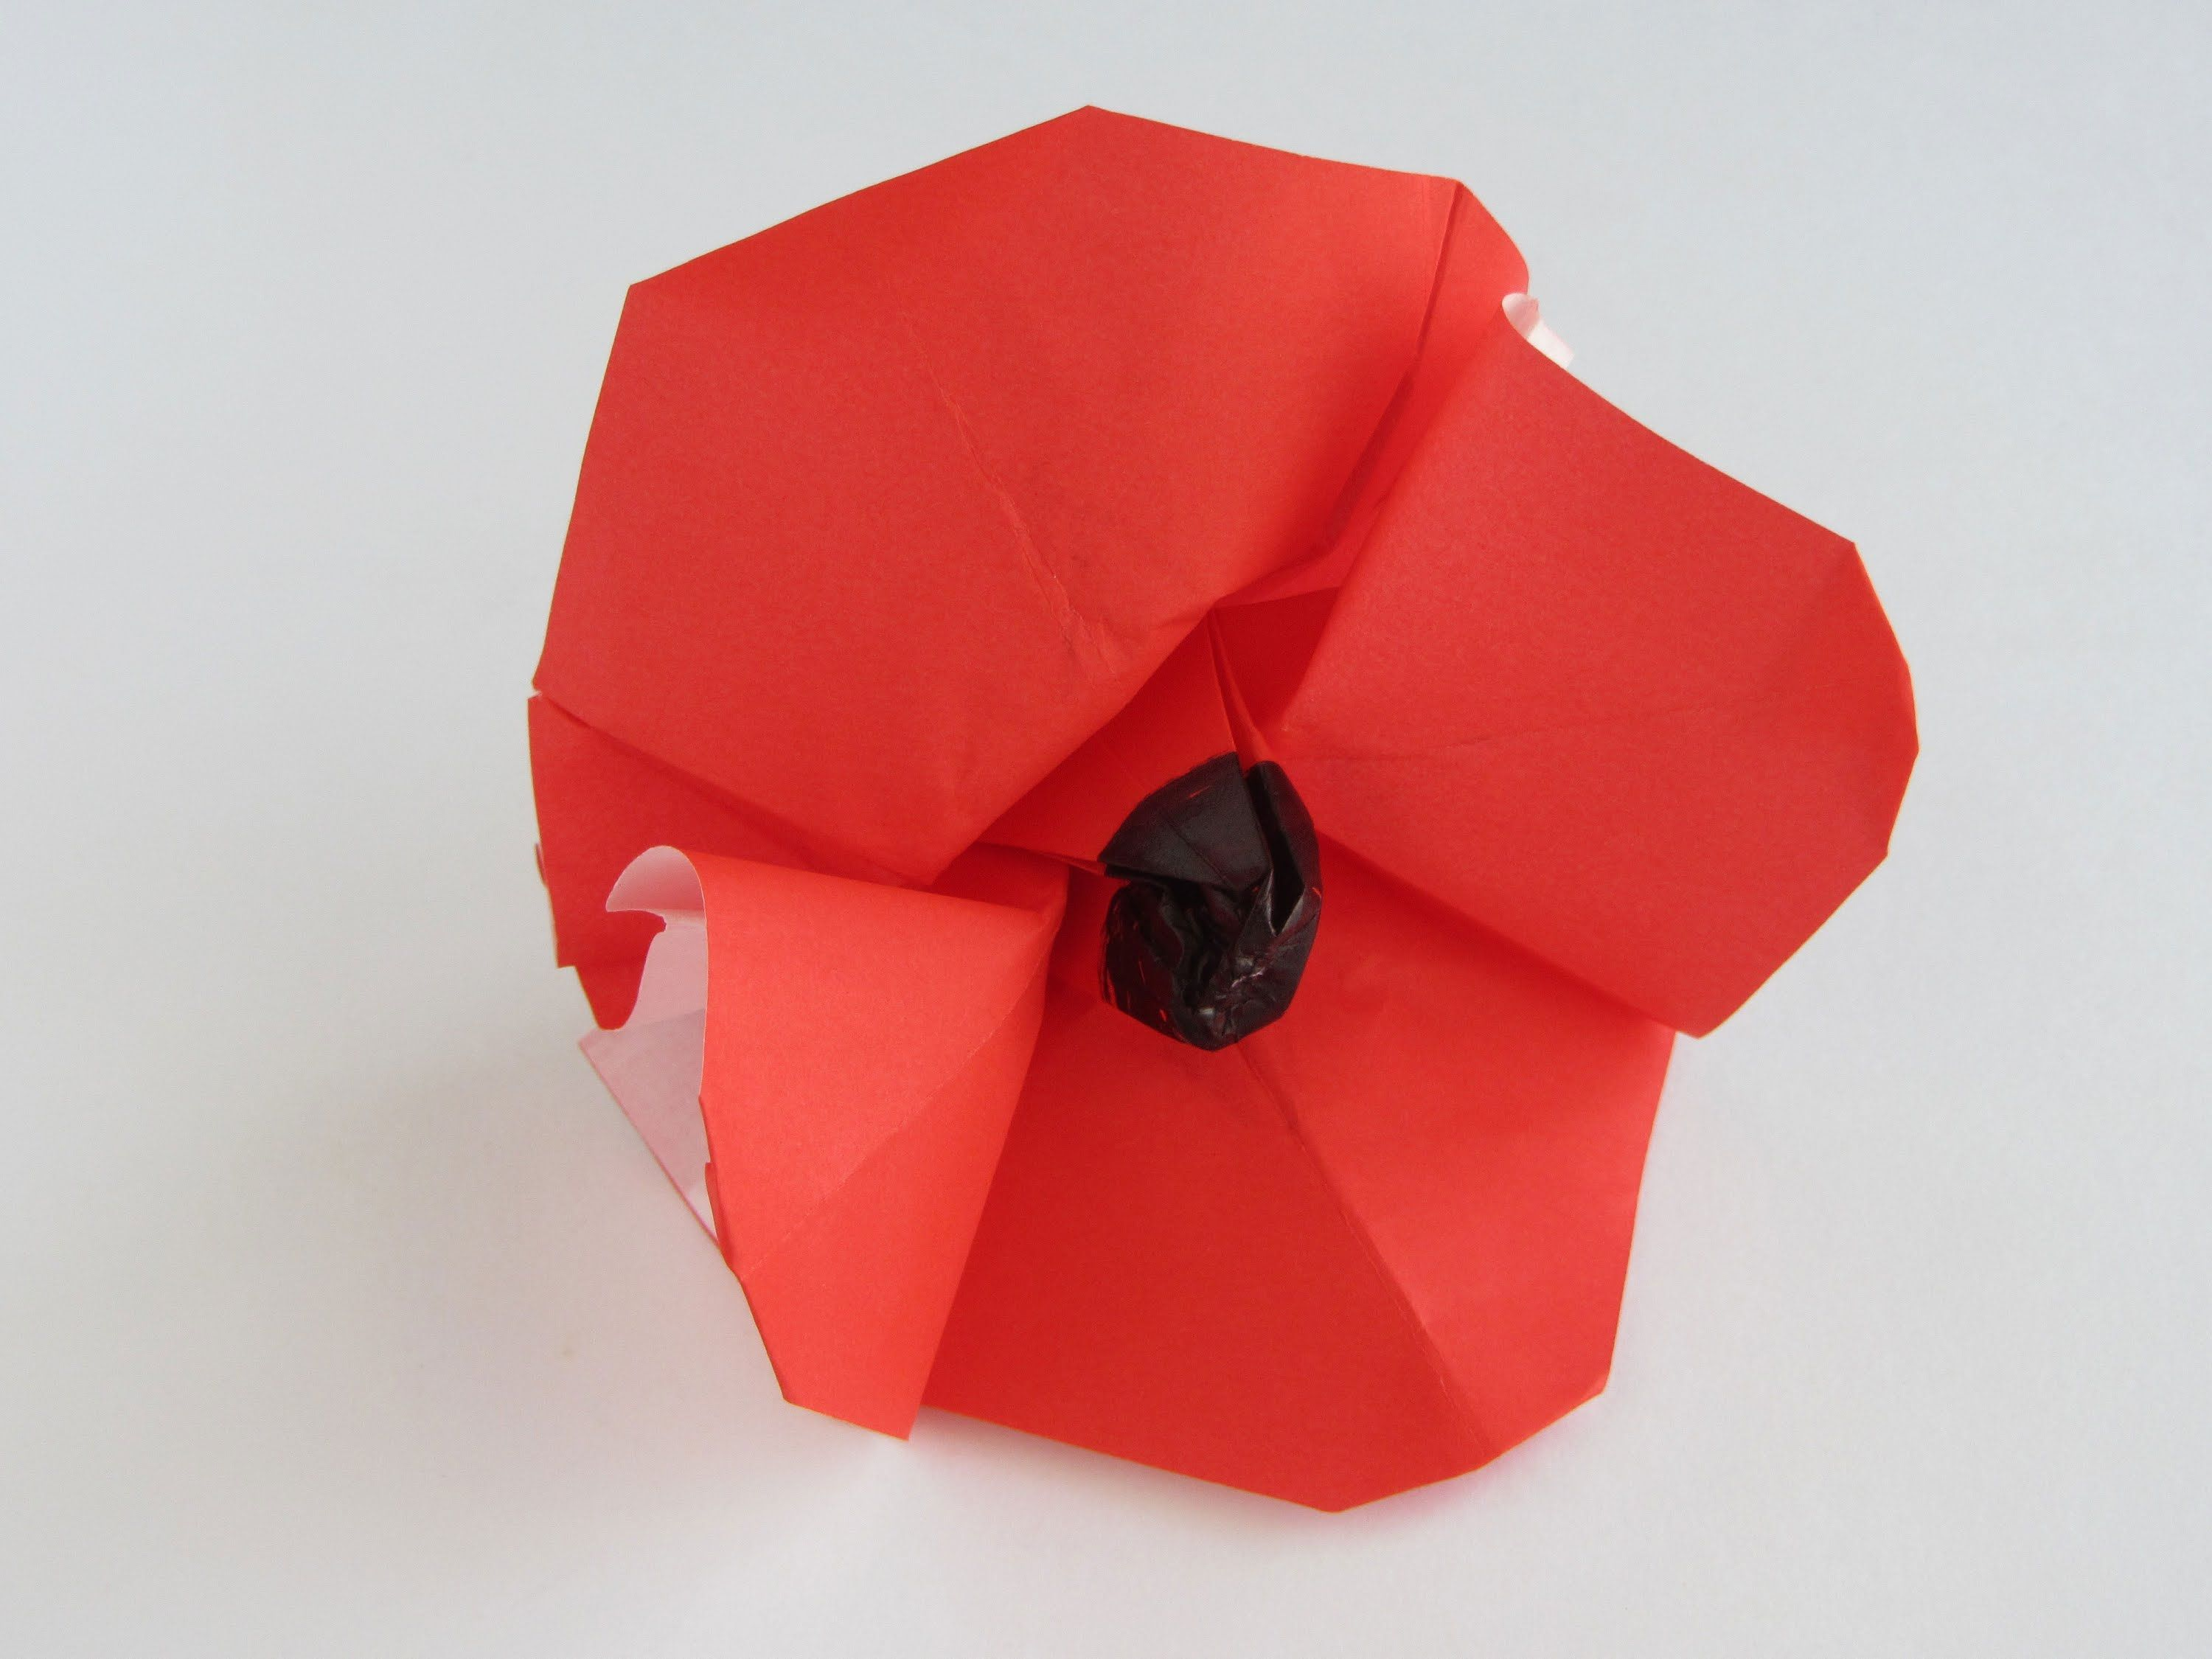 Origami Poppy Origami Pinterest Origami And Crafts